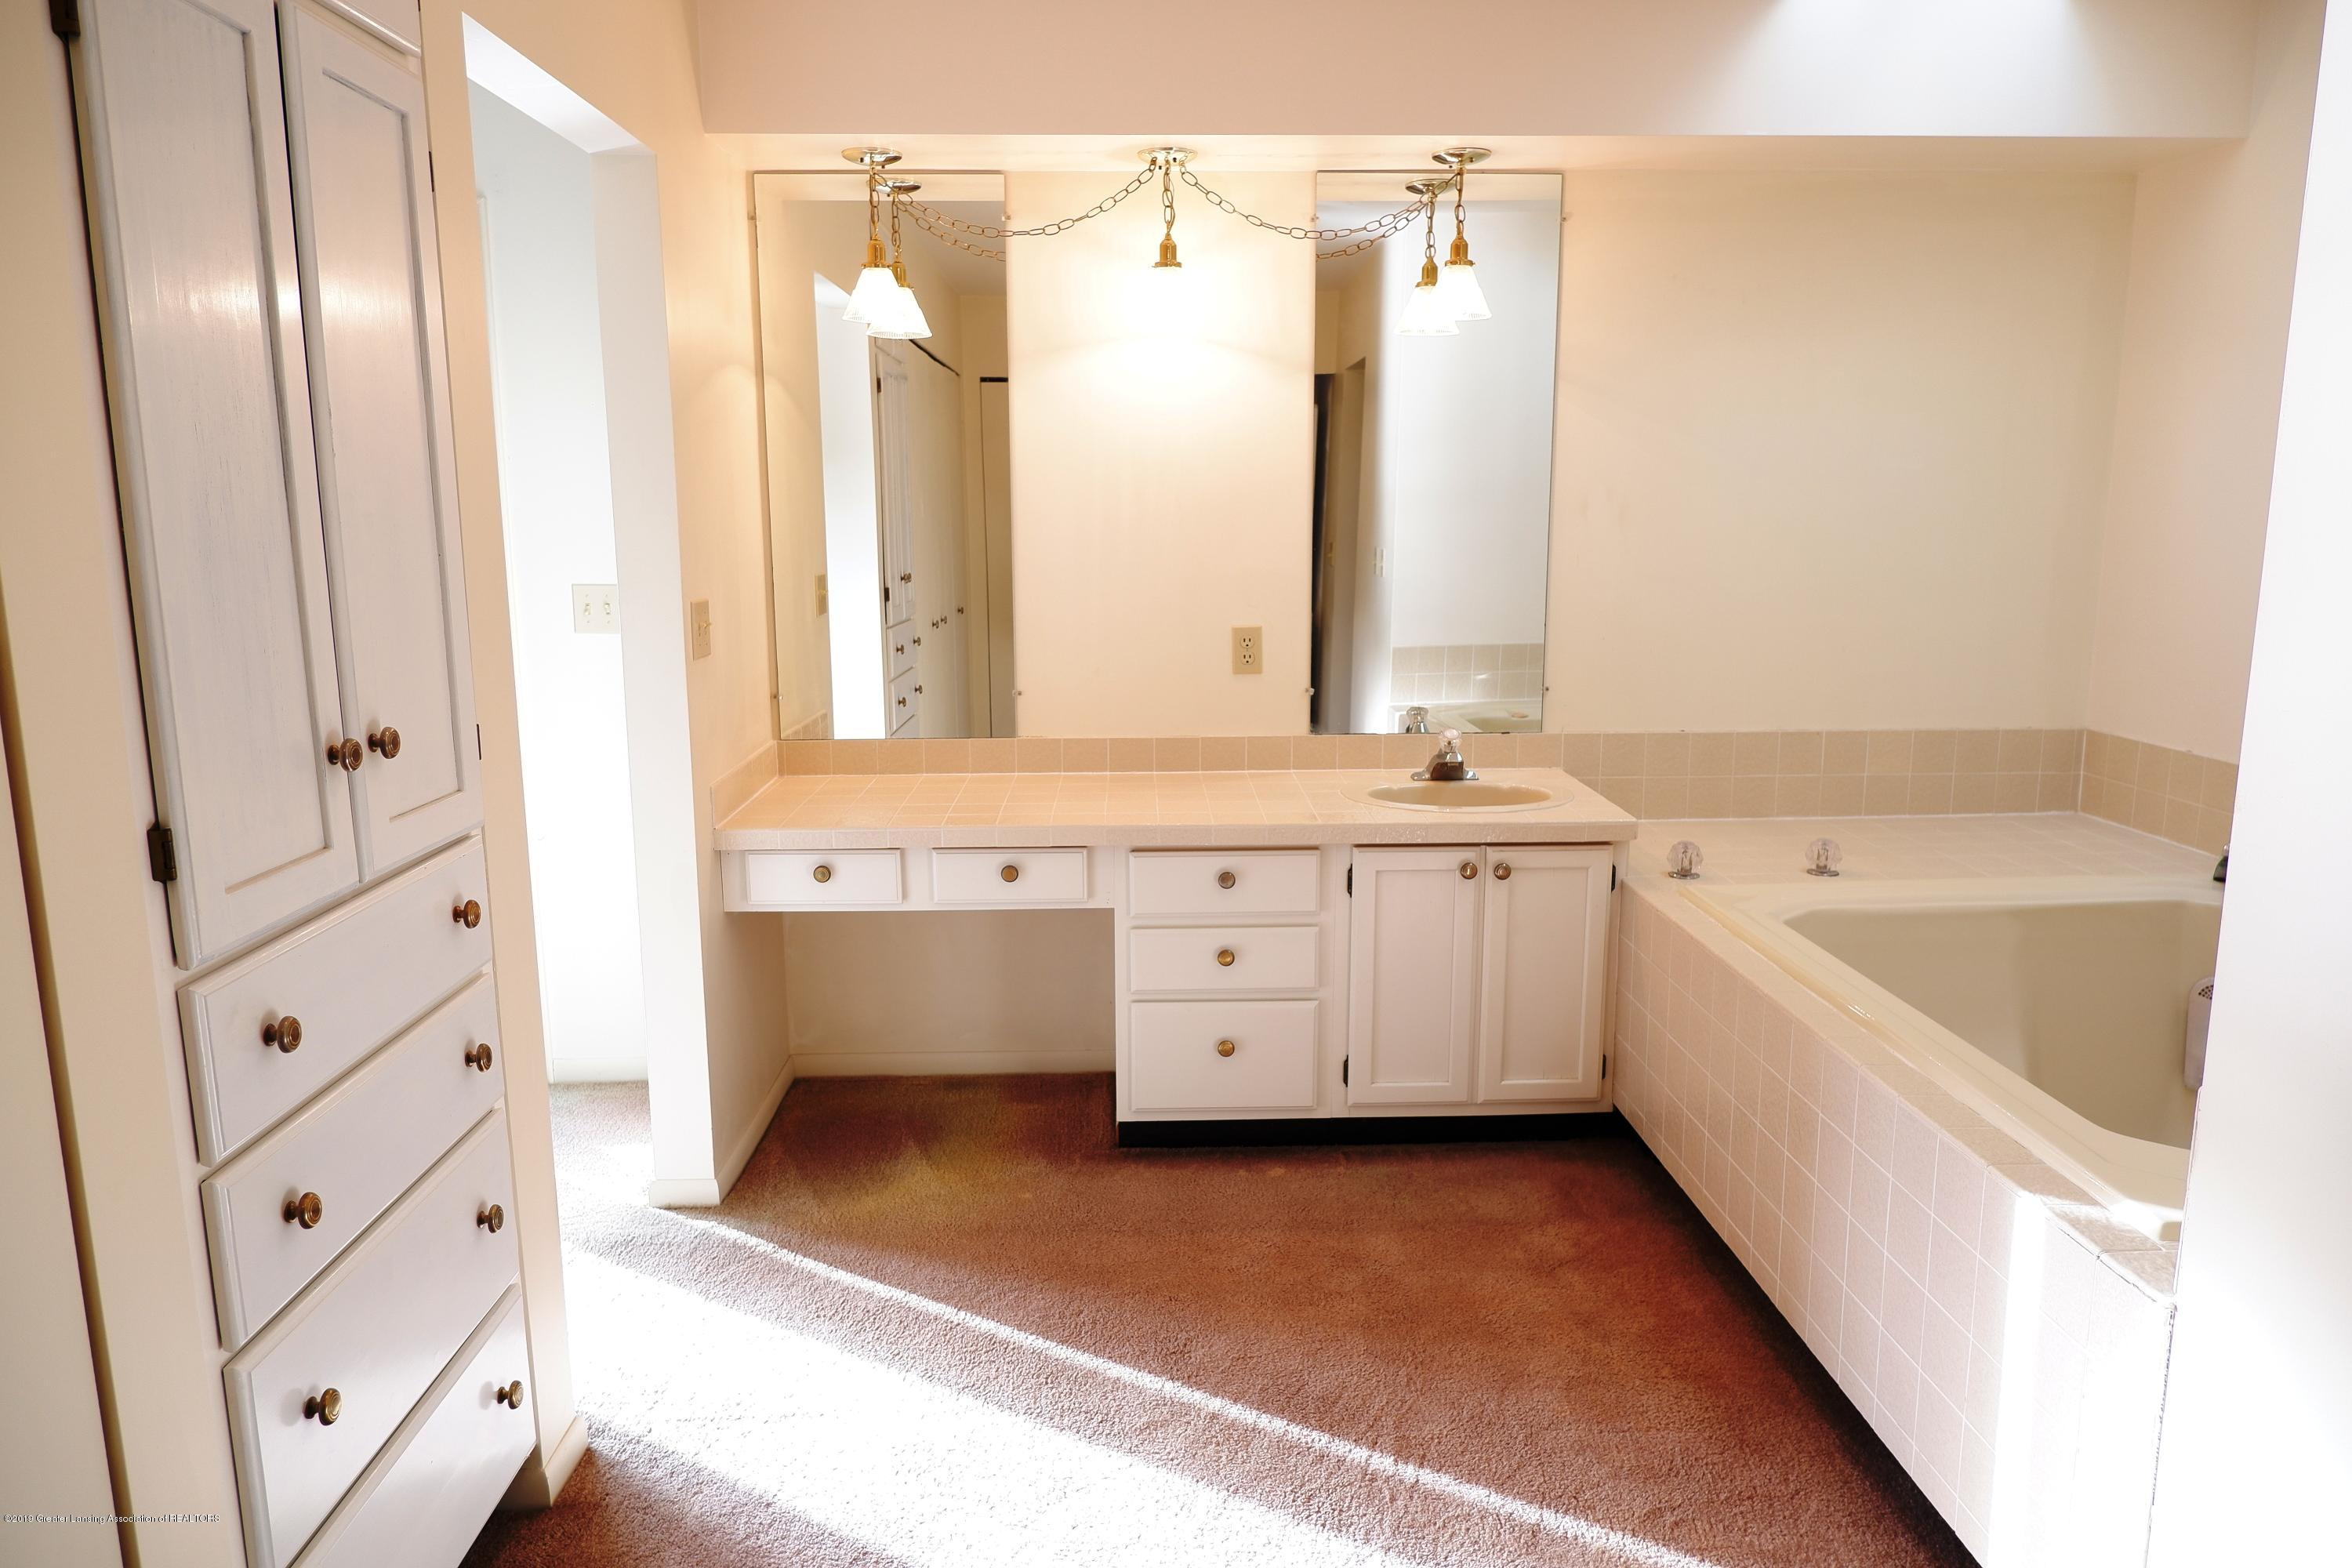 8933 W Scenic Lake Dr - View of master bathroom - 29